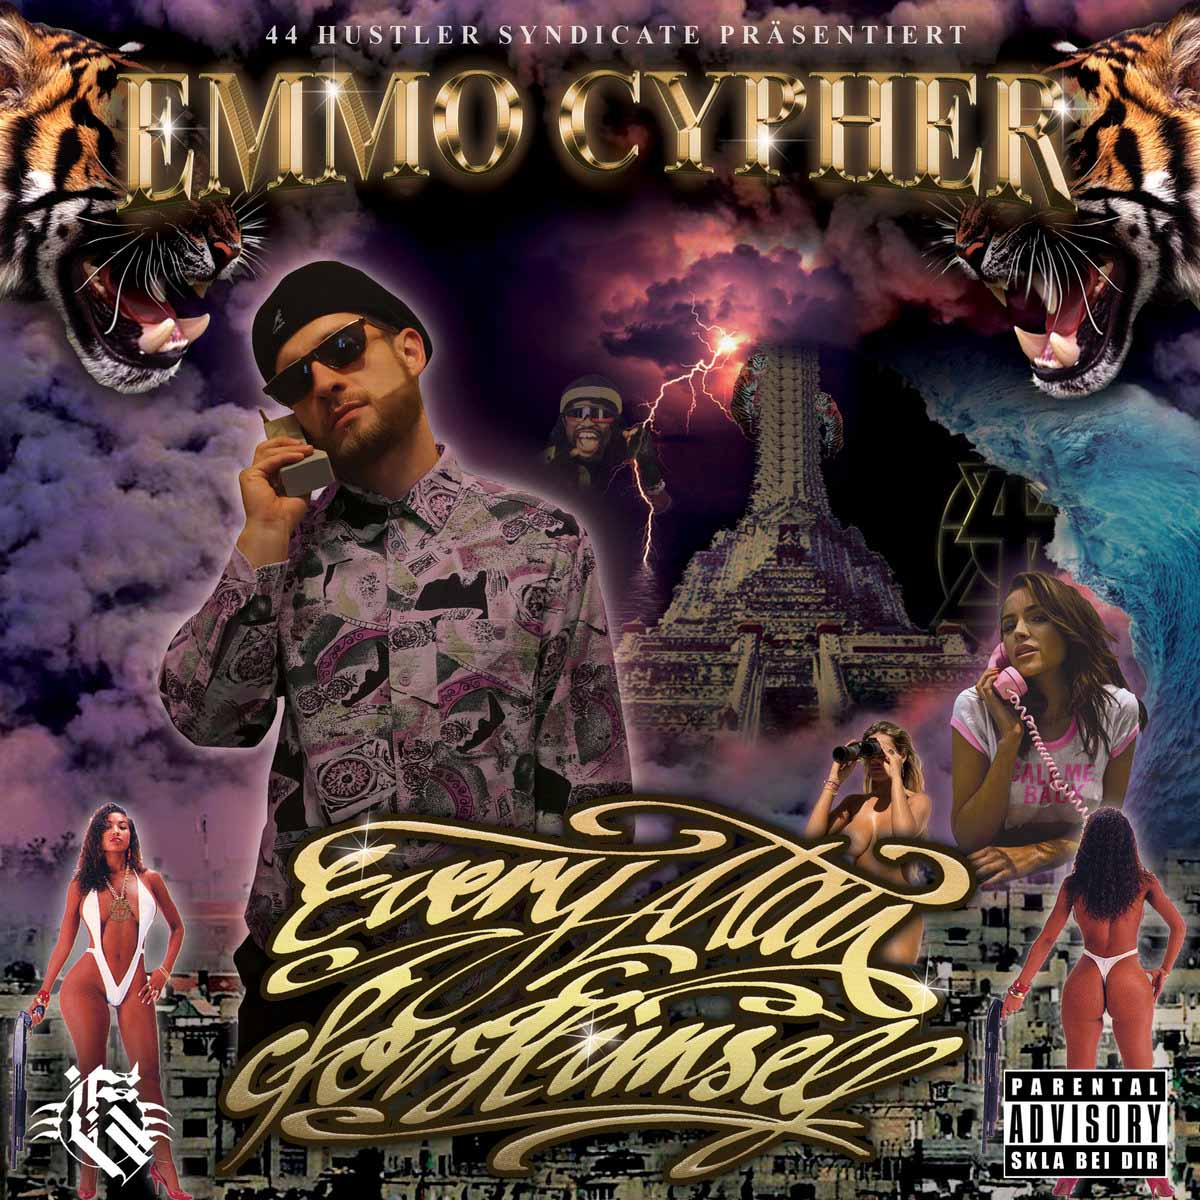 Upcoming: Emmo Cypher - Alles Kohle